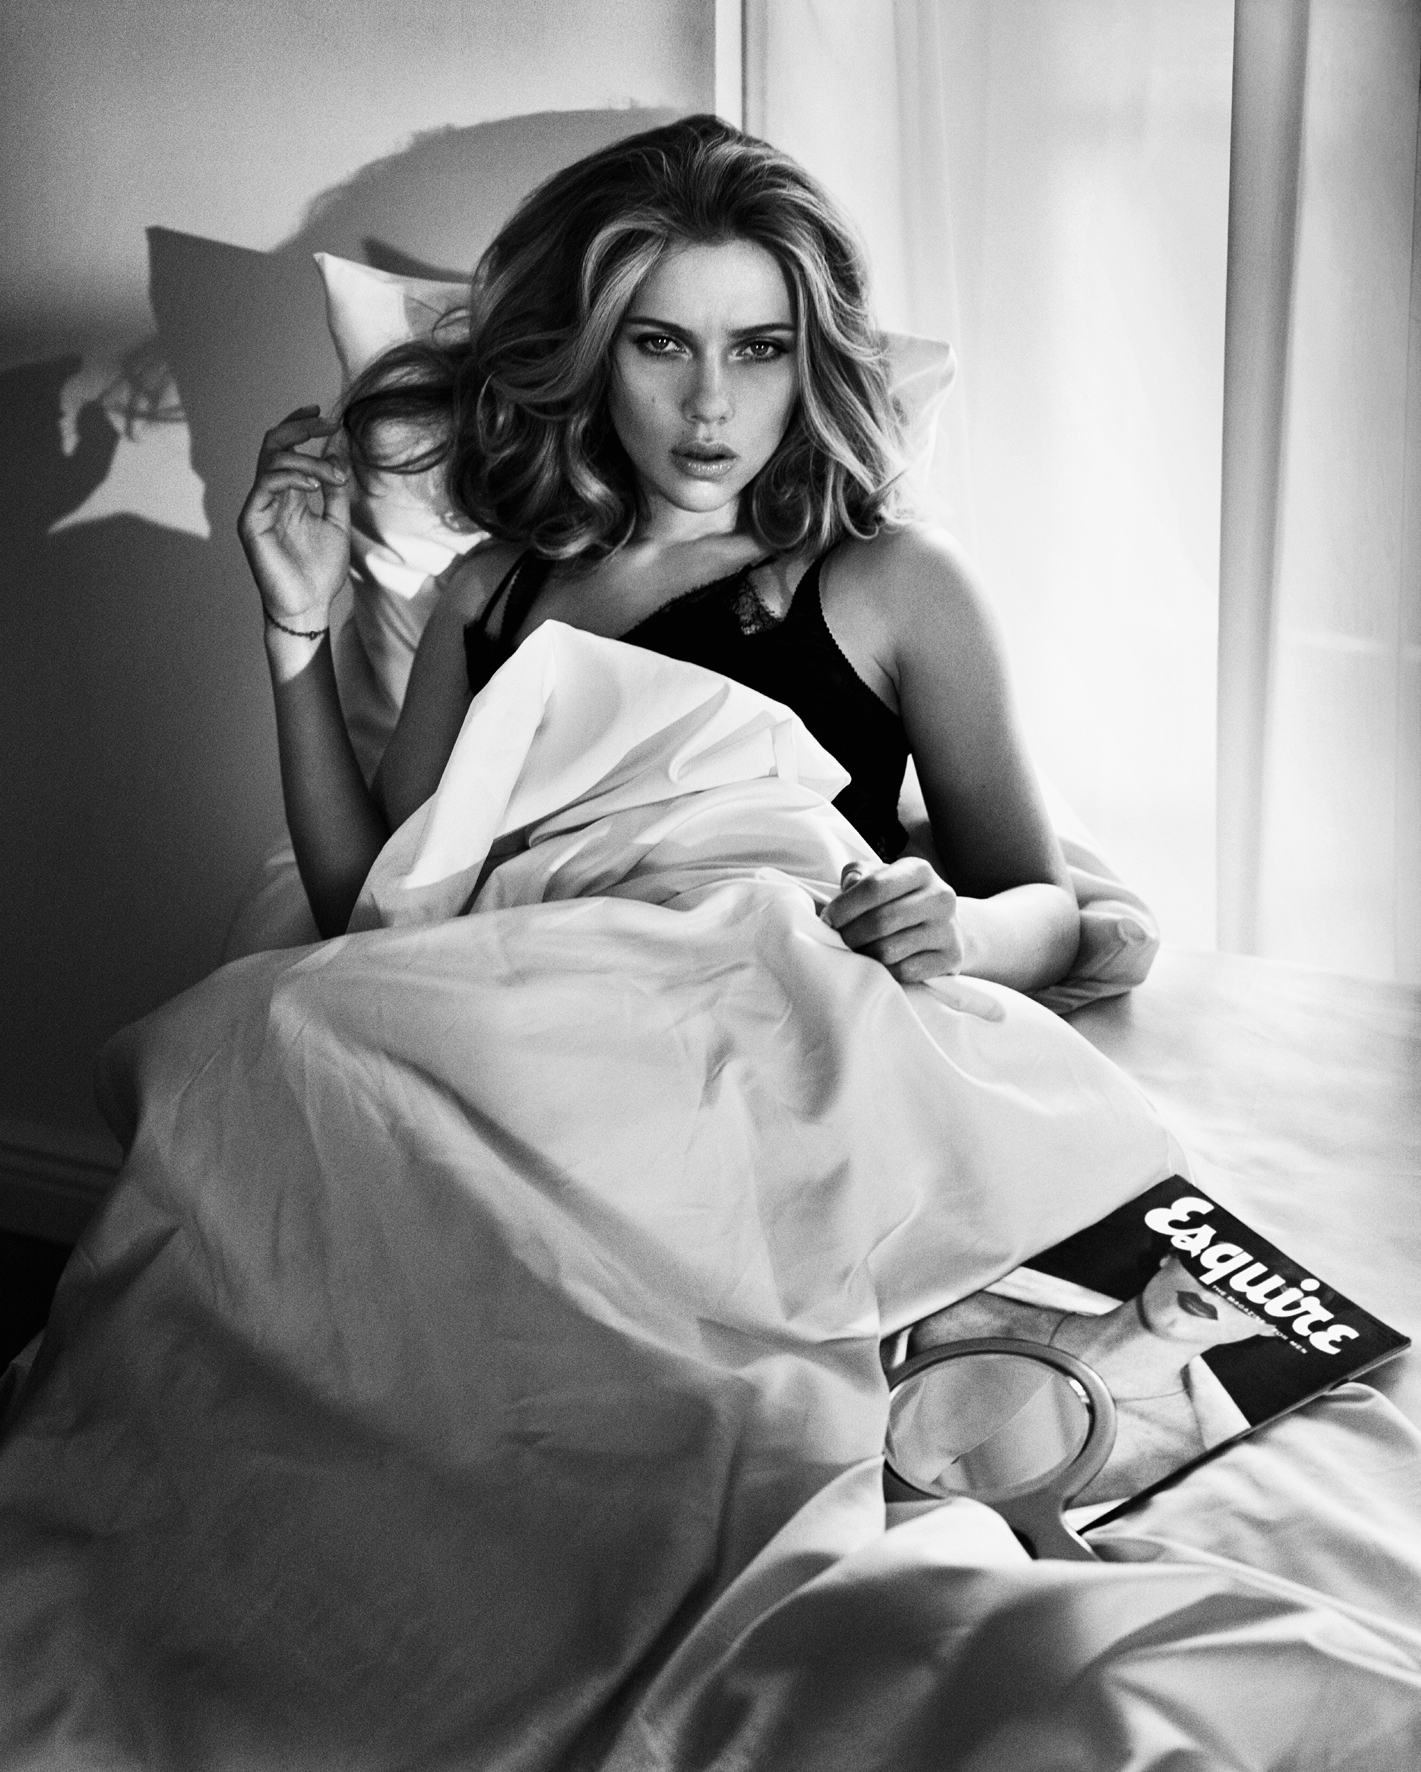 © The Light Between Us by Vincent Peters, to be published by teNeues in September 2014, € 98 -   www.teneues.com  .    Scarlett Johansson,   Photo © 2014 Vincent Peters. All rights reserved.